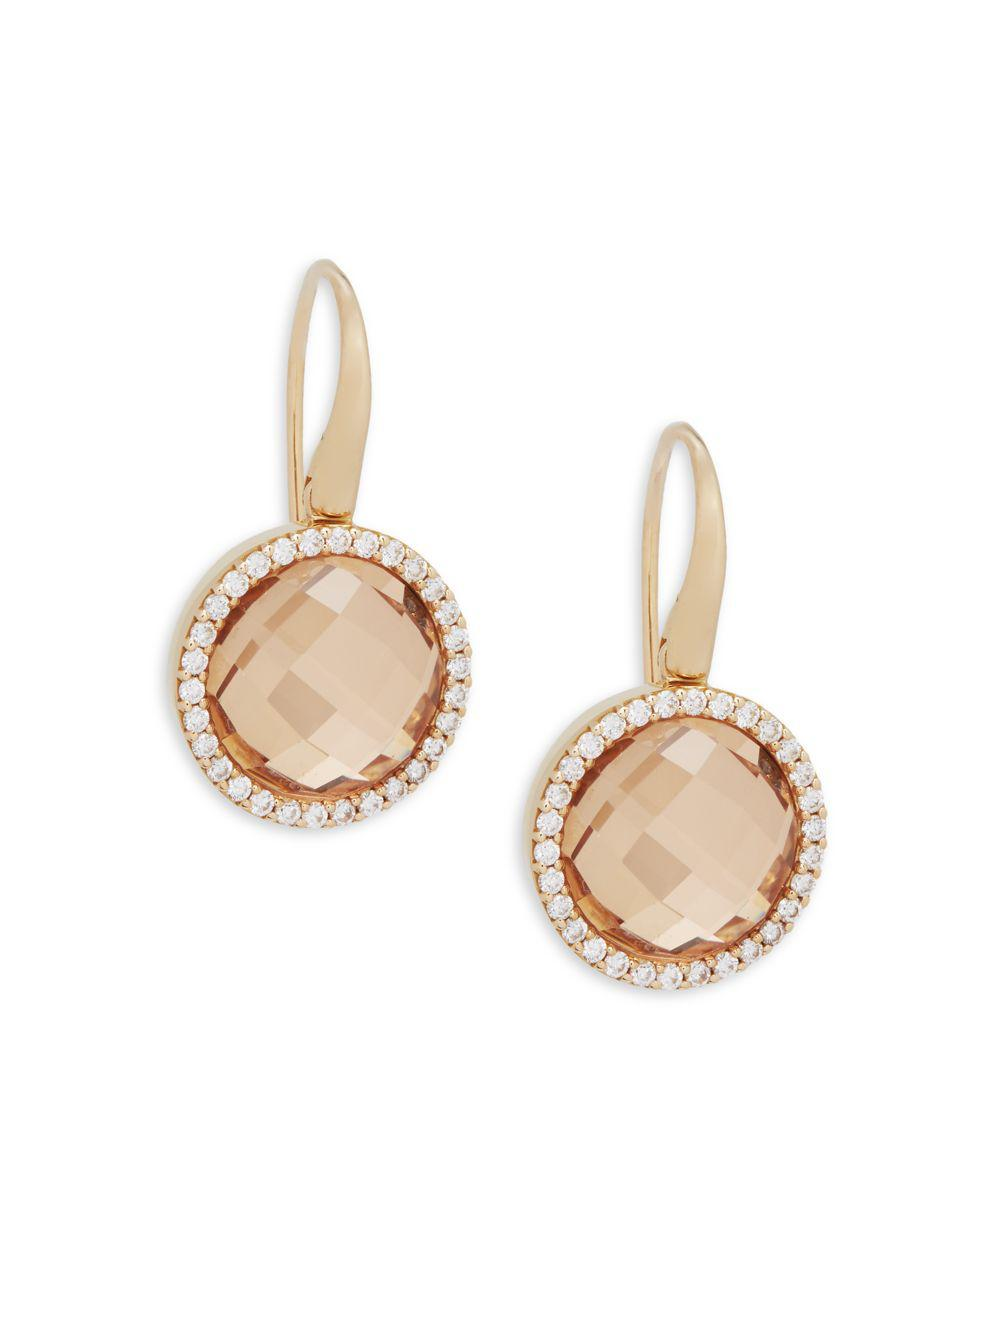 Roberto Coin 18k Rose Gold Diamond & Crystal Doublet Earrings TvwWuoXS